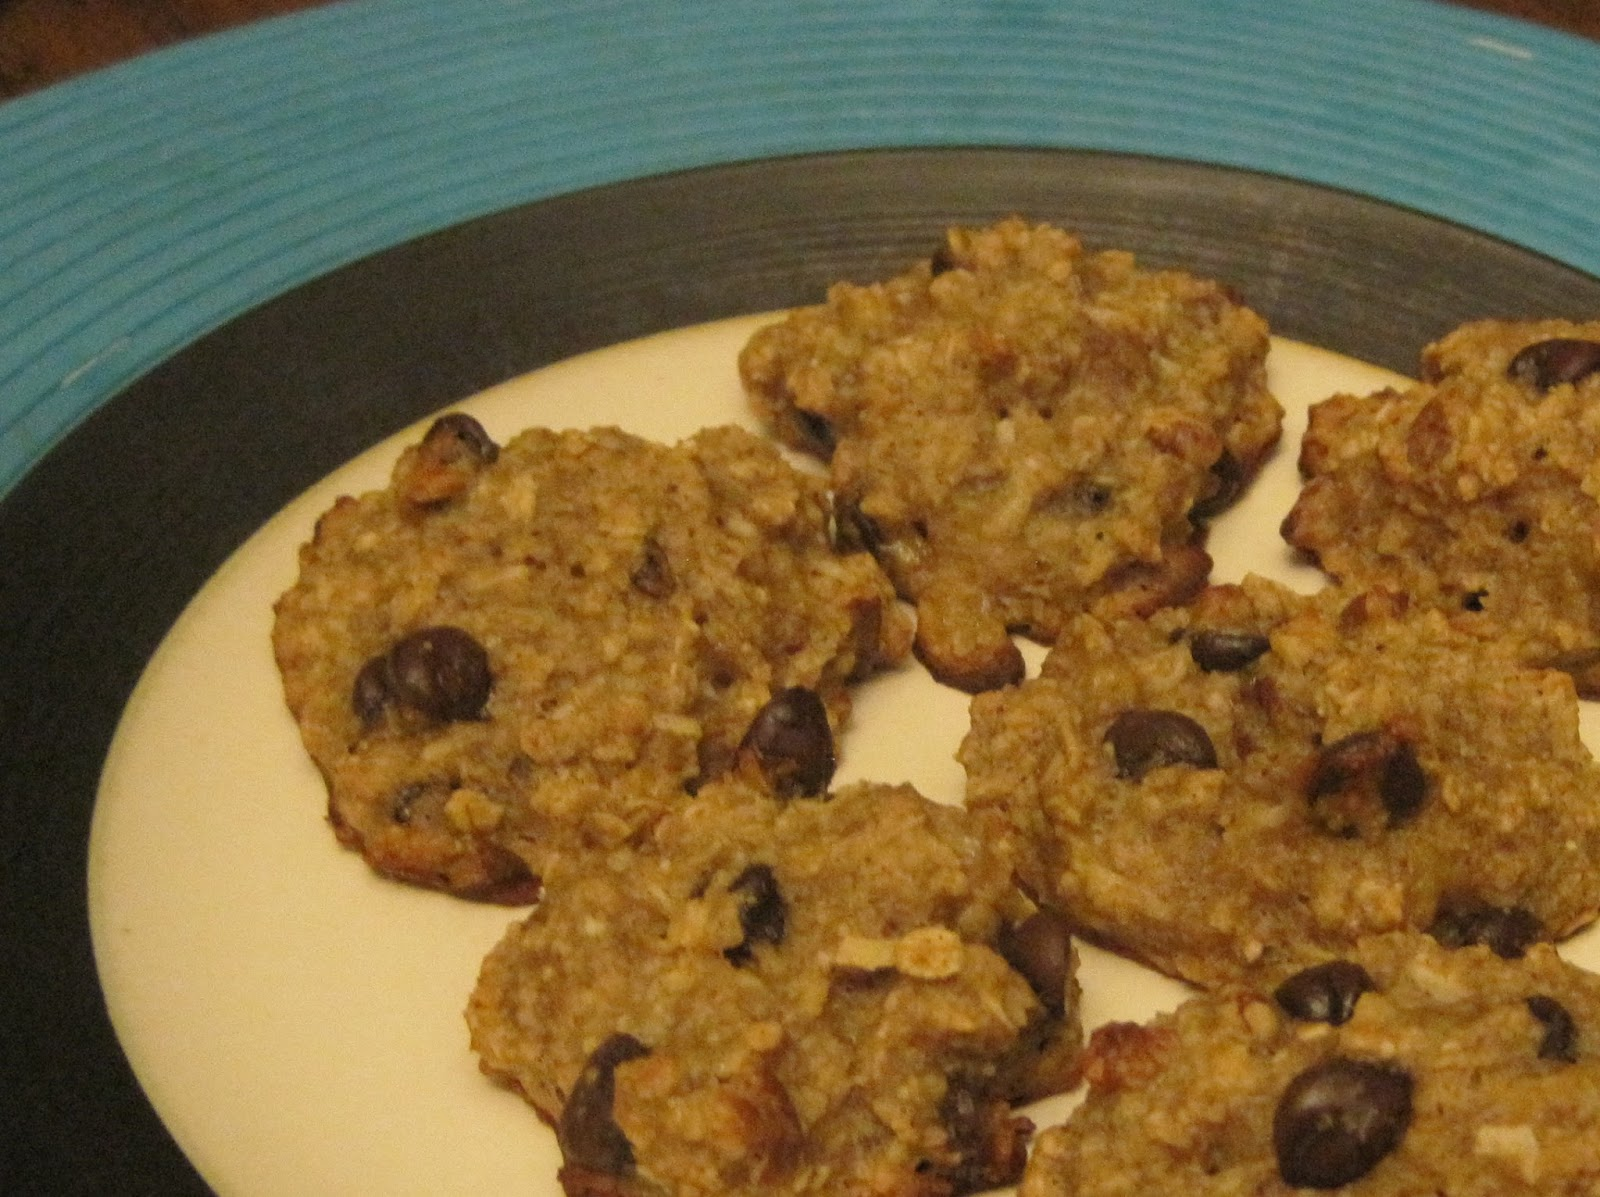 Peanut Oatmeal Cookies, chocolate chips glistening!